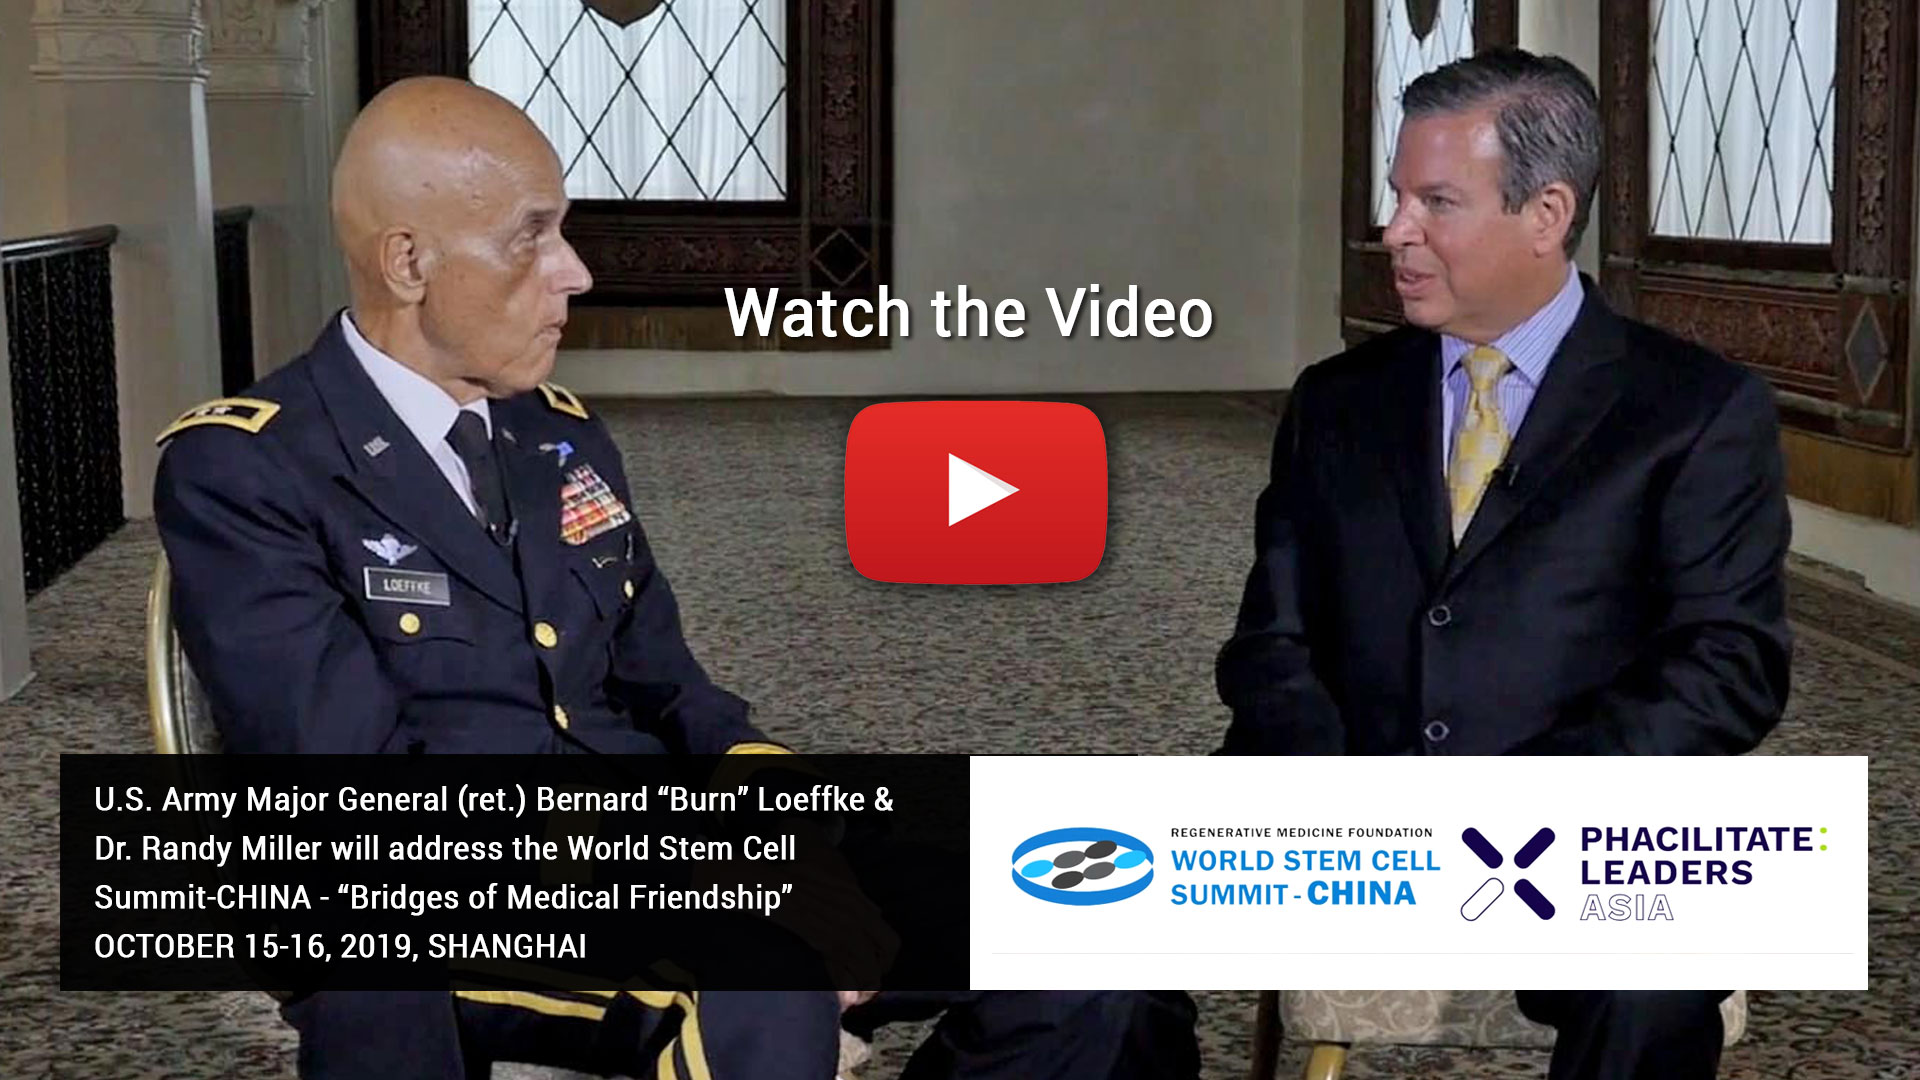 "U.S. Army Major General (ret.) Bernard ""Burn"" Loeffke & Dr. Randy Miller will address the World Stem Cell Summit-CHINA ""Bridges of Medical Friendship"" October 15-16, 2019, Shanghai"